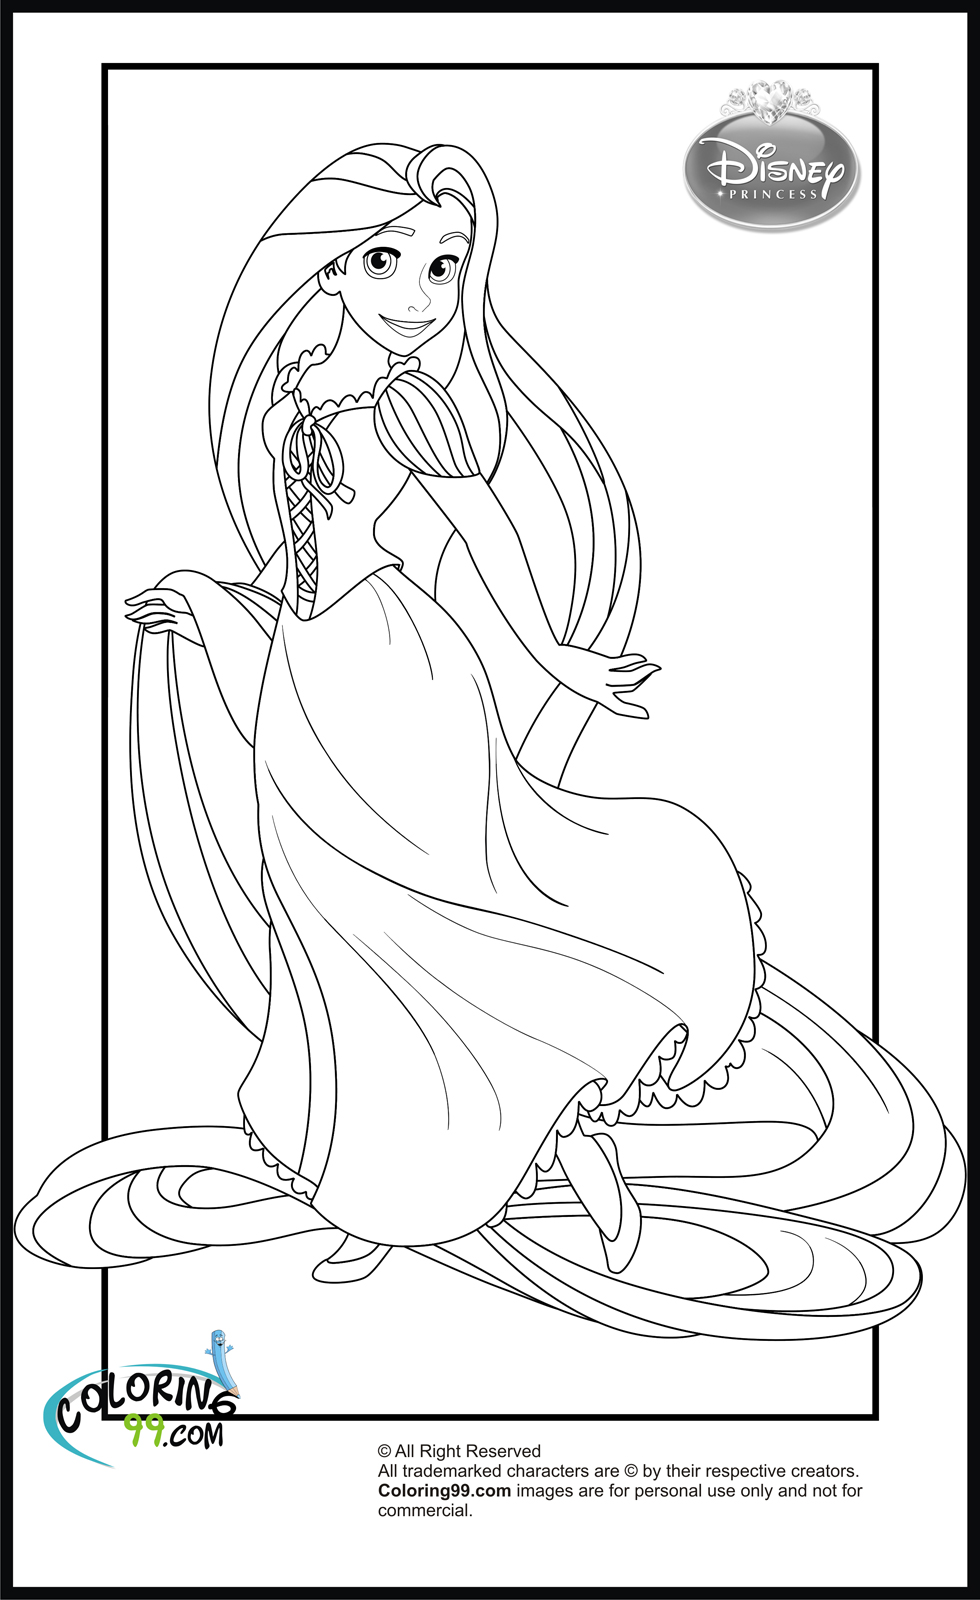 tangled coloring pages disney - photo#50